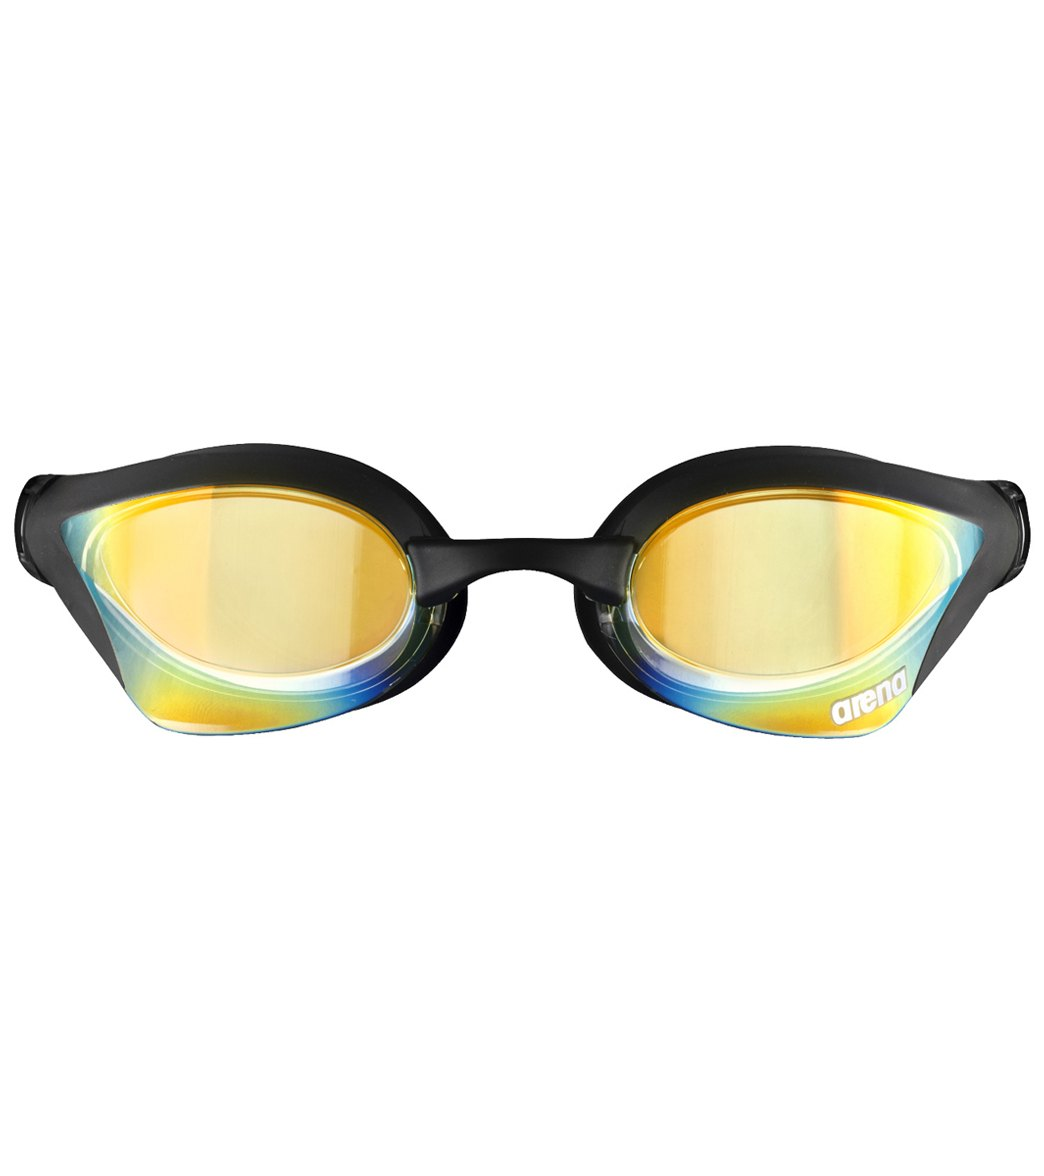 e70dcaa027 Arena Cobra Core Mirrored Goggle at SwimOutlet.com - Free Shipping